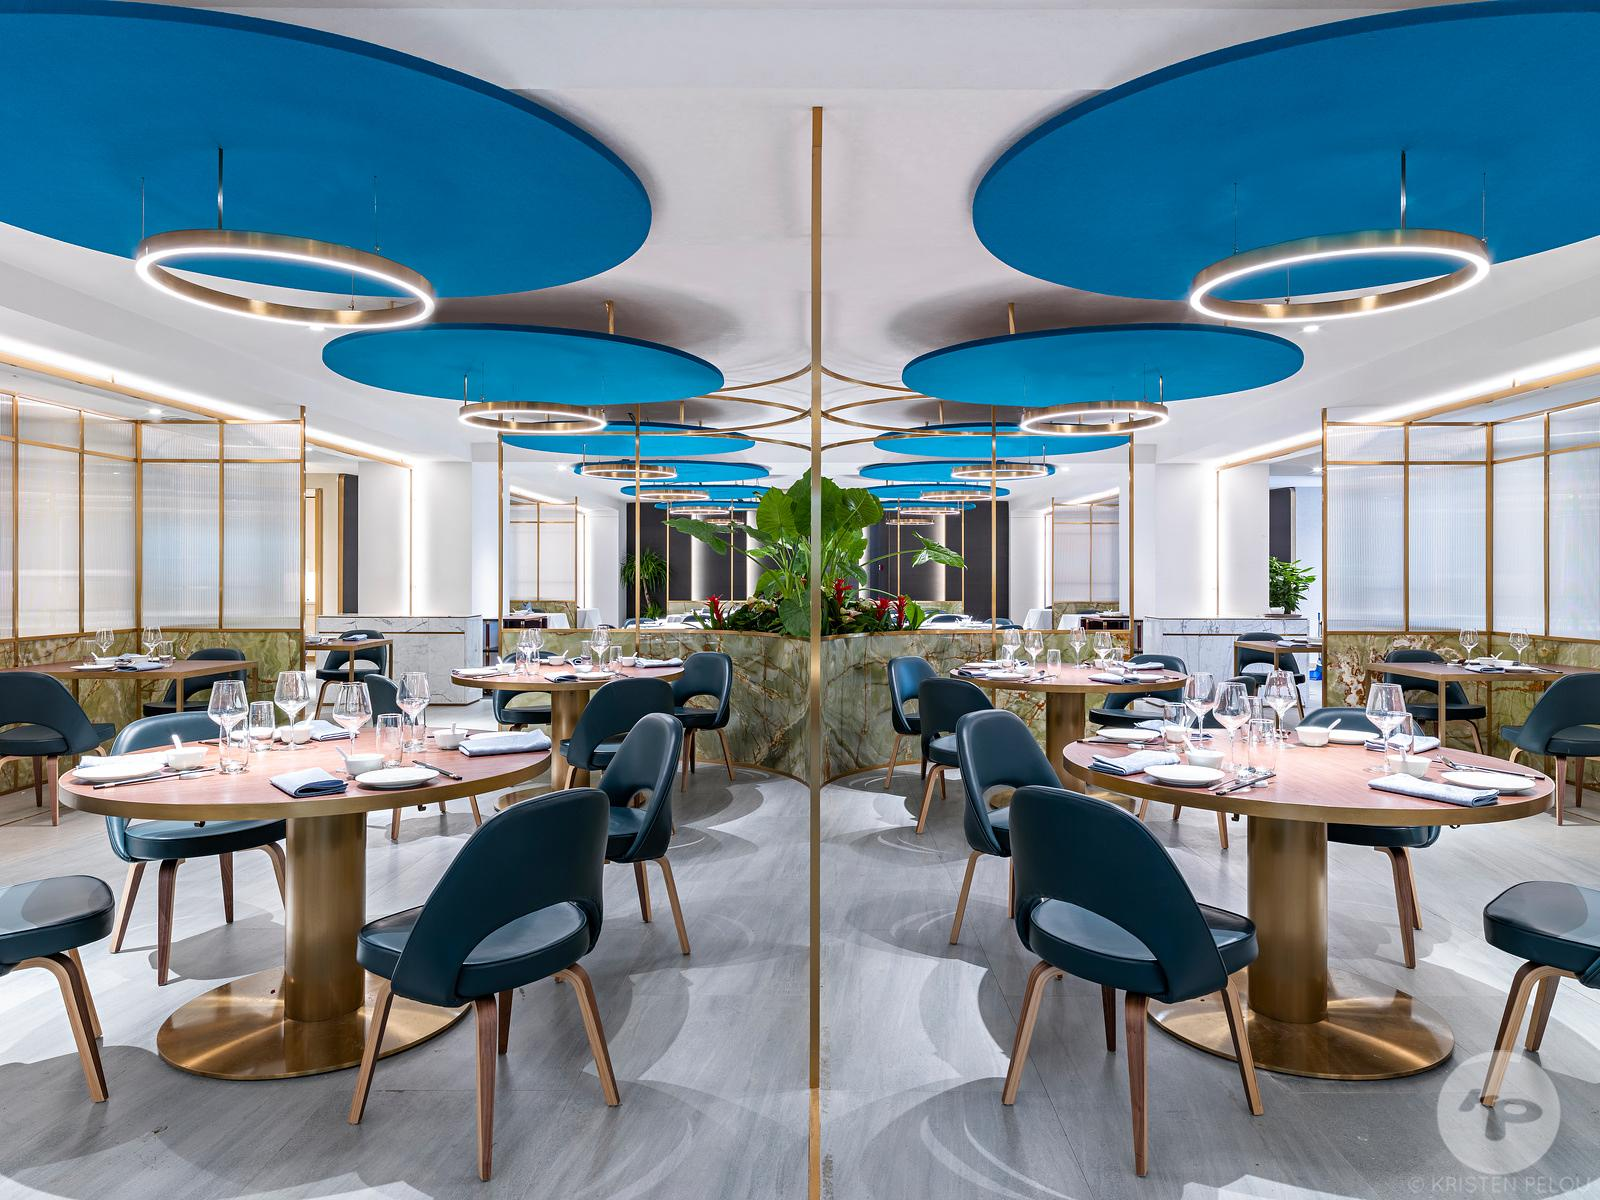 Beijing Kitchen restaurant designed by Sybarite in Xi'an, China. Photo : ©Kristen Pelou